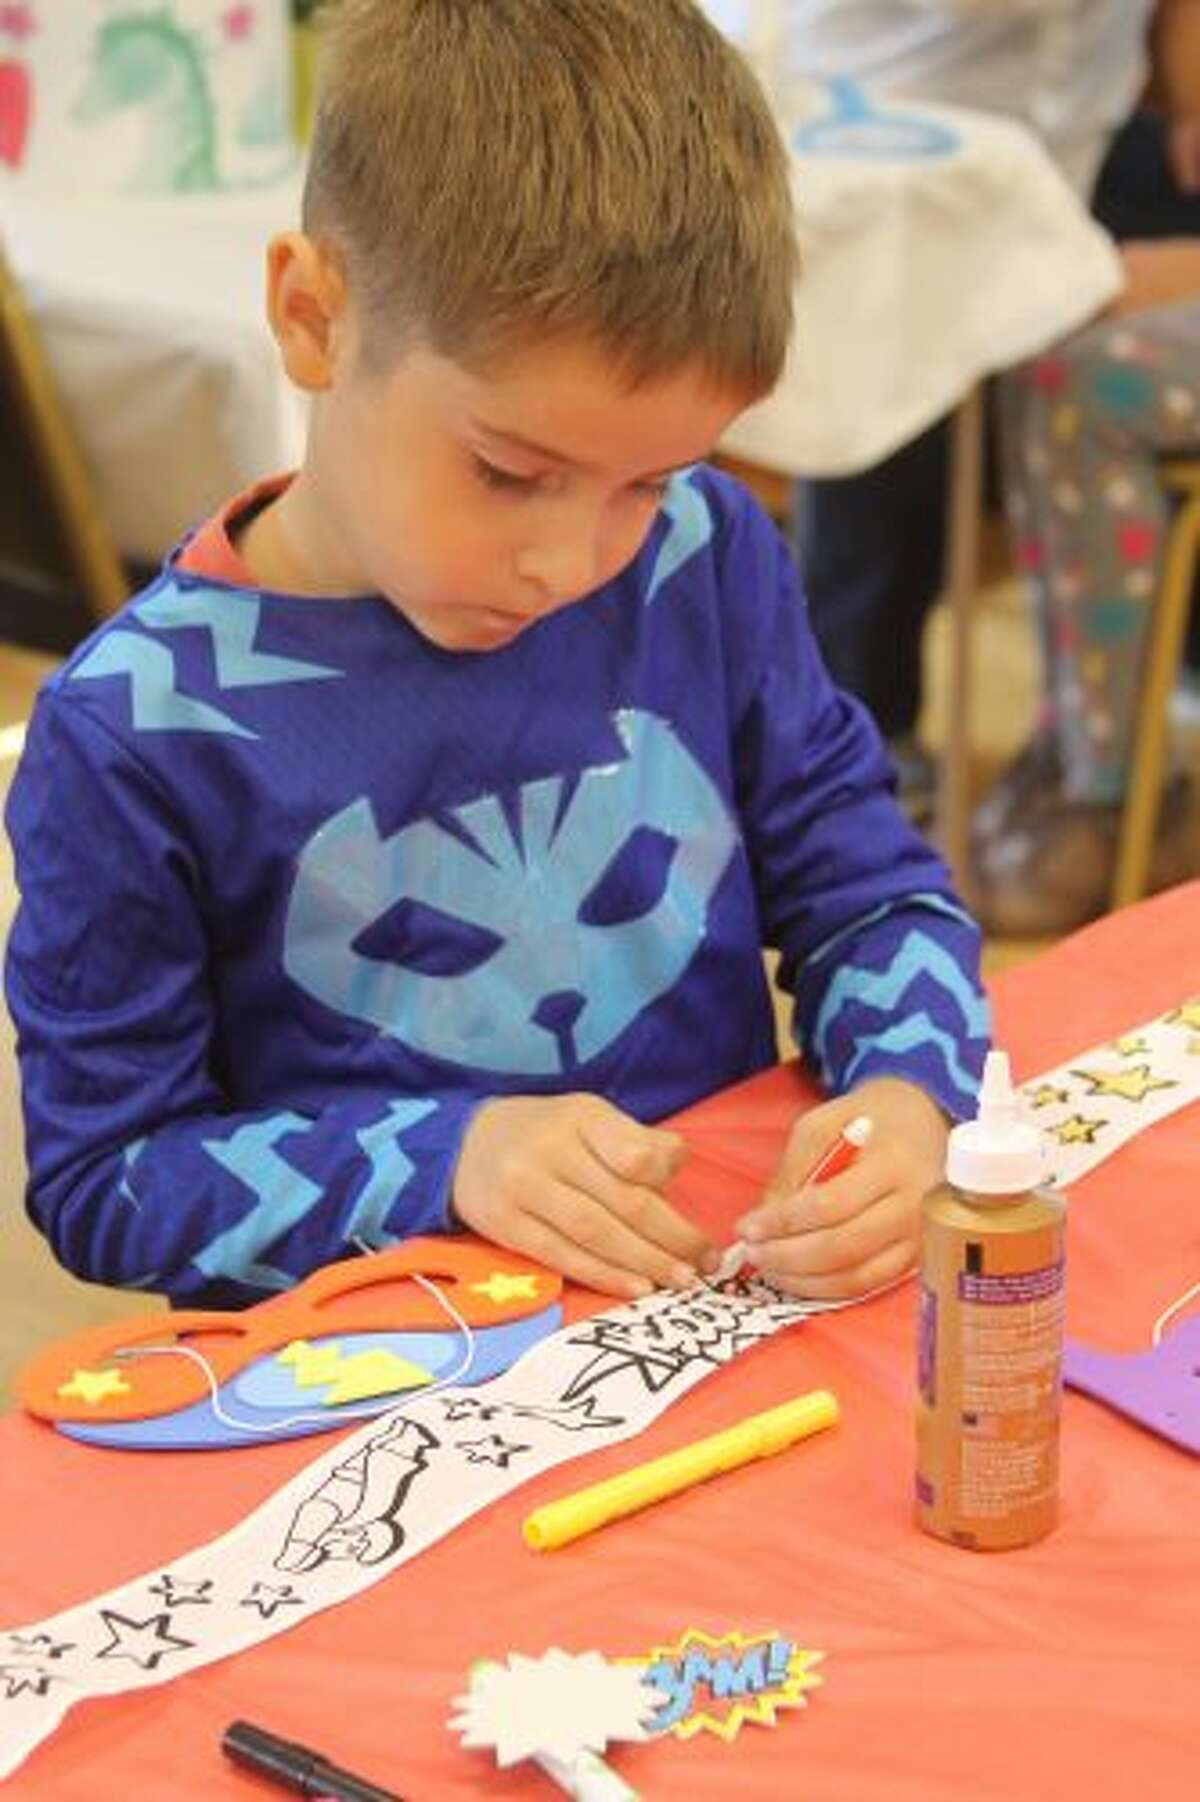 Marshall Bartos, of Manistee, colors a headband during the Superhero Party on Saturday at the Manistee County Library. (Michelle Graves/News Advocate)